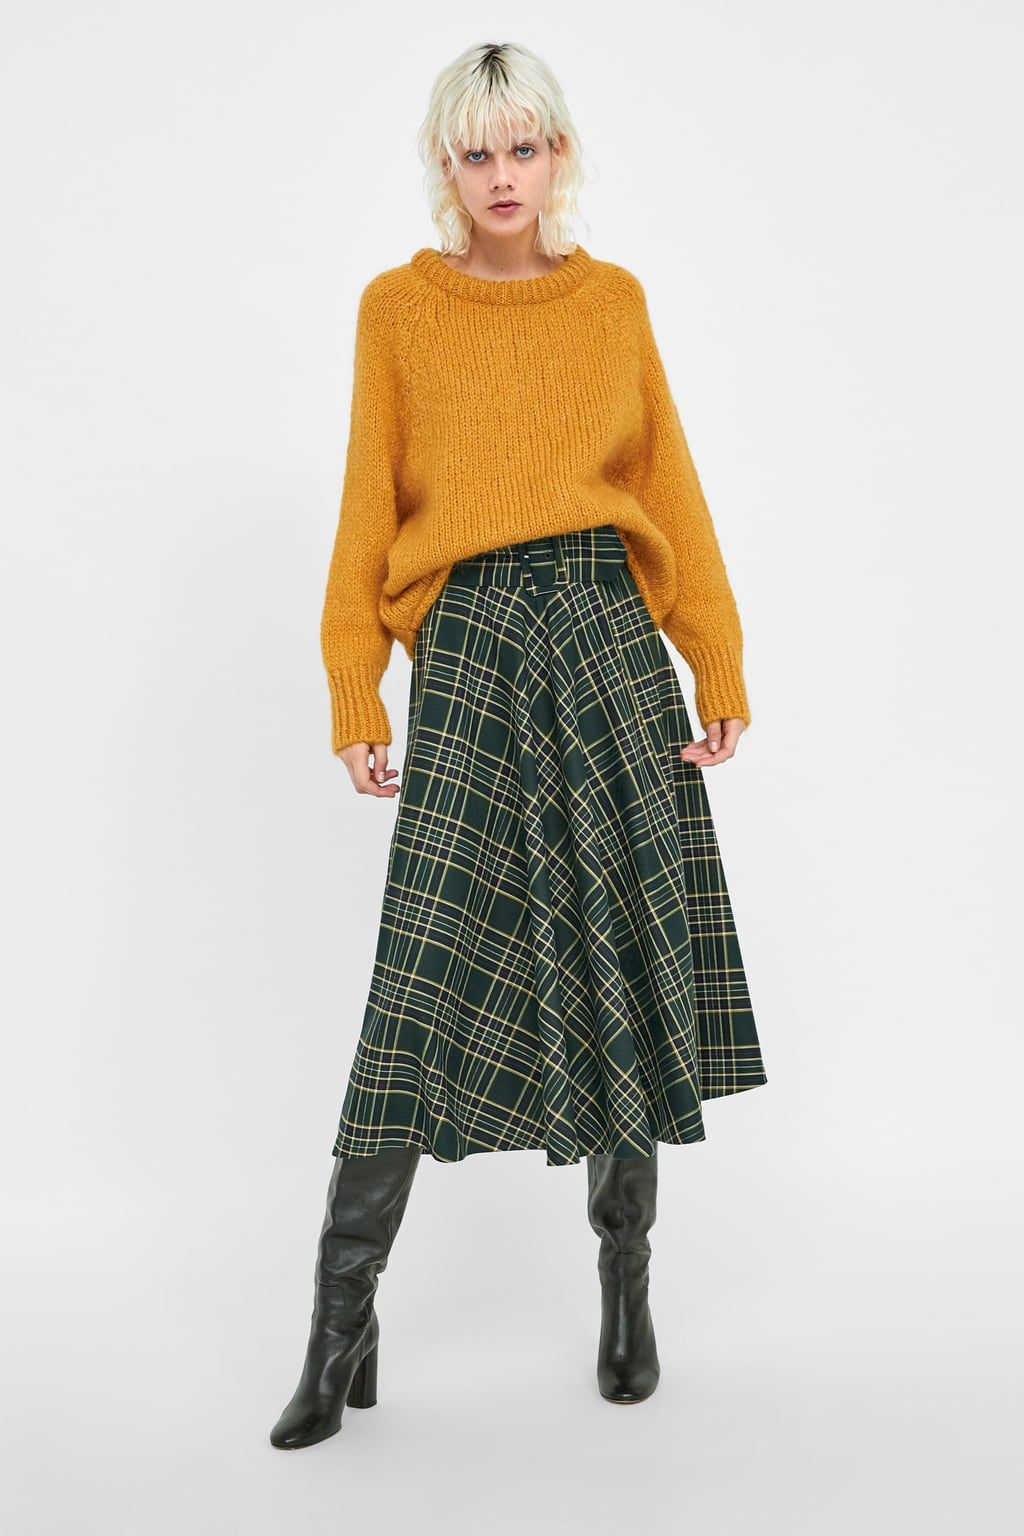 319162eb02 Image 1 of BELTED PLAID SKIRT from Zara BELTED PLAID SKIRT Fall Must Haves,  Plaid